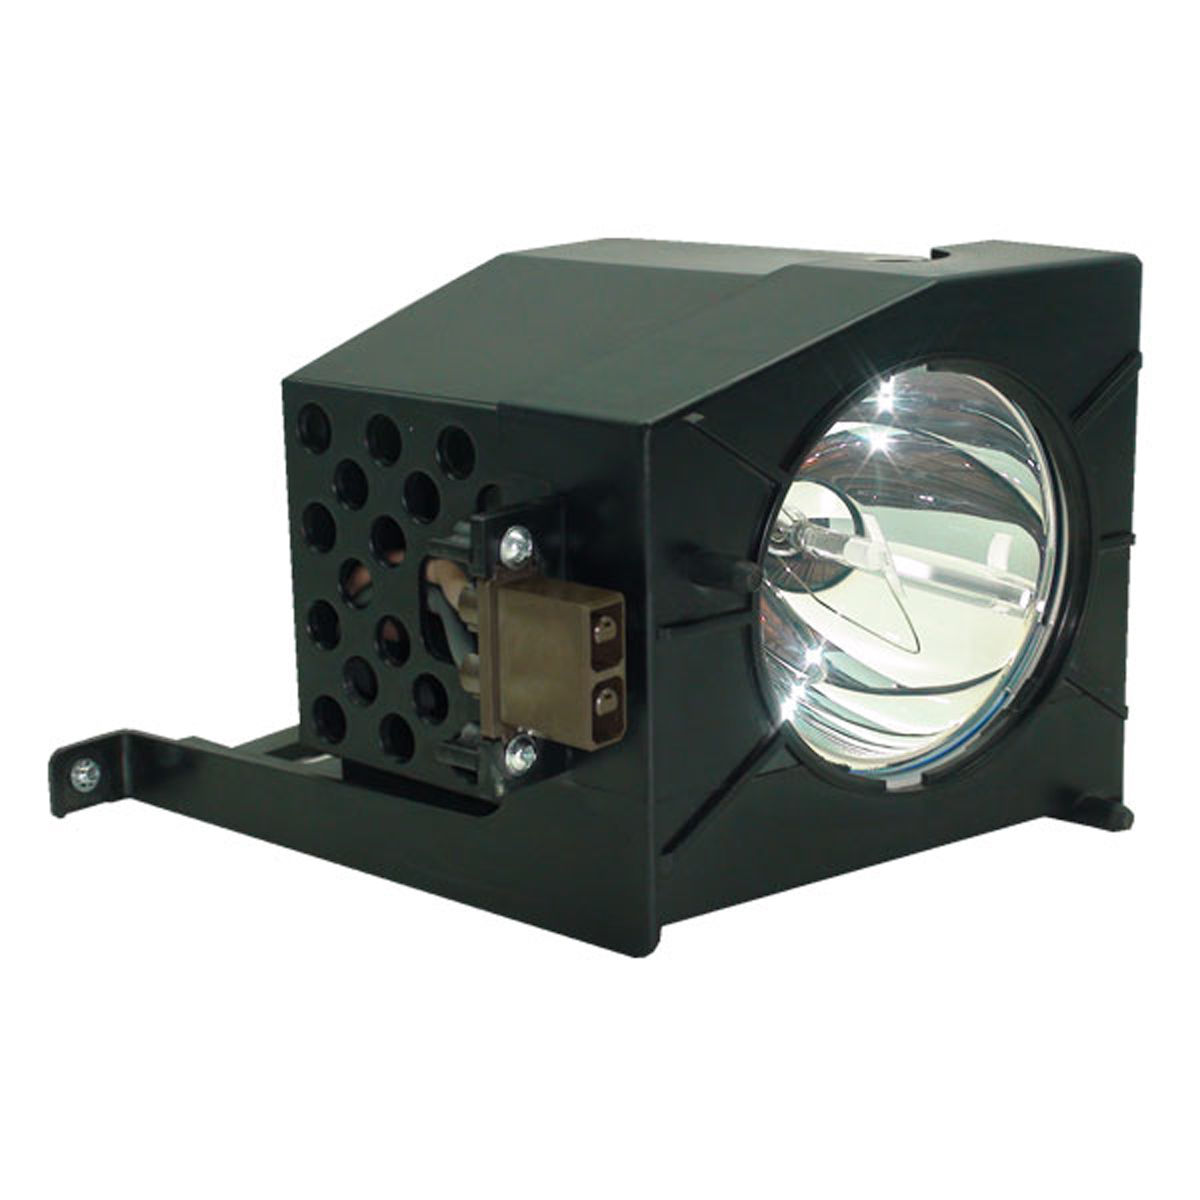 D95-LMP D95LMP 23311153 for Toshiba 52HM95 46HM15 Projector Bulb Lamp with housing